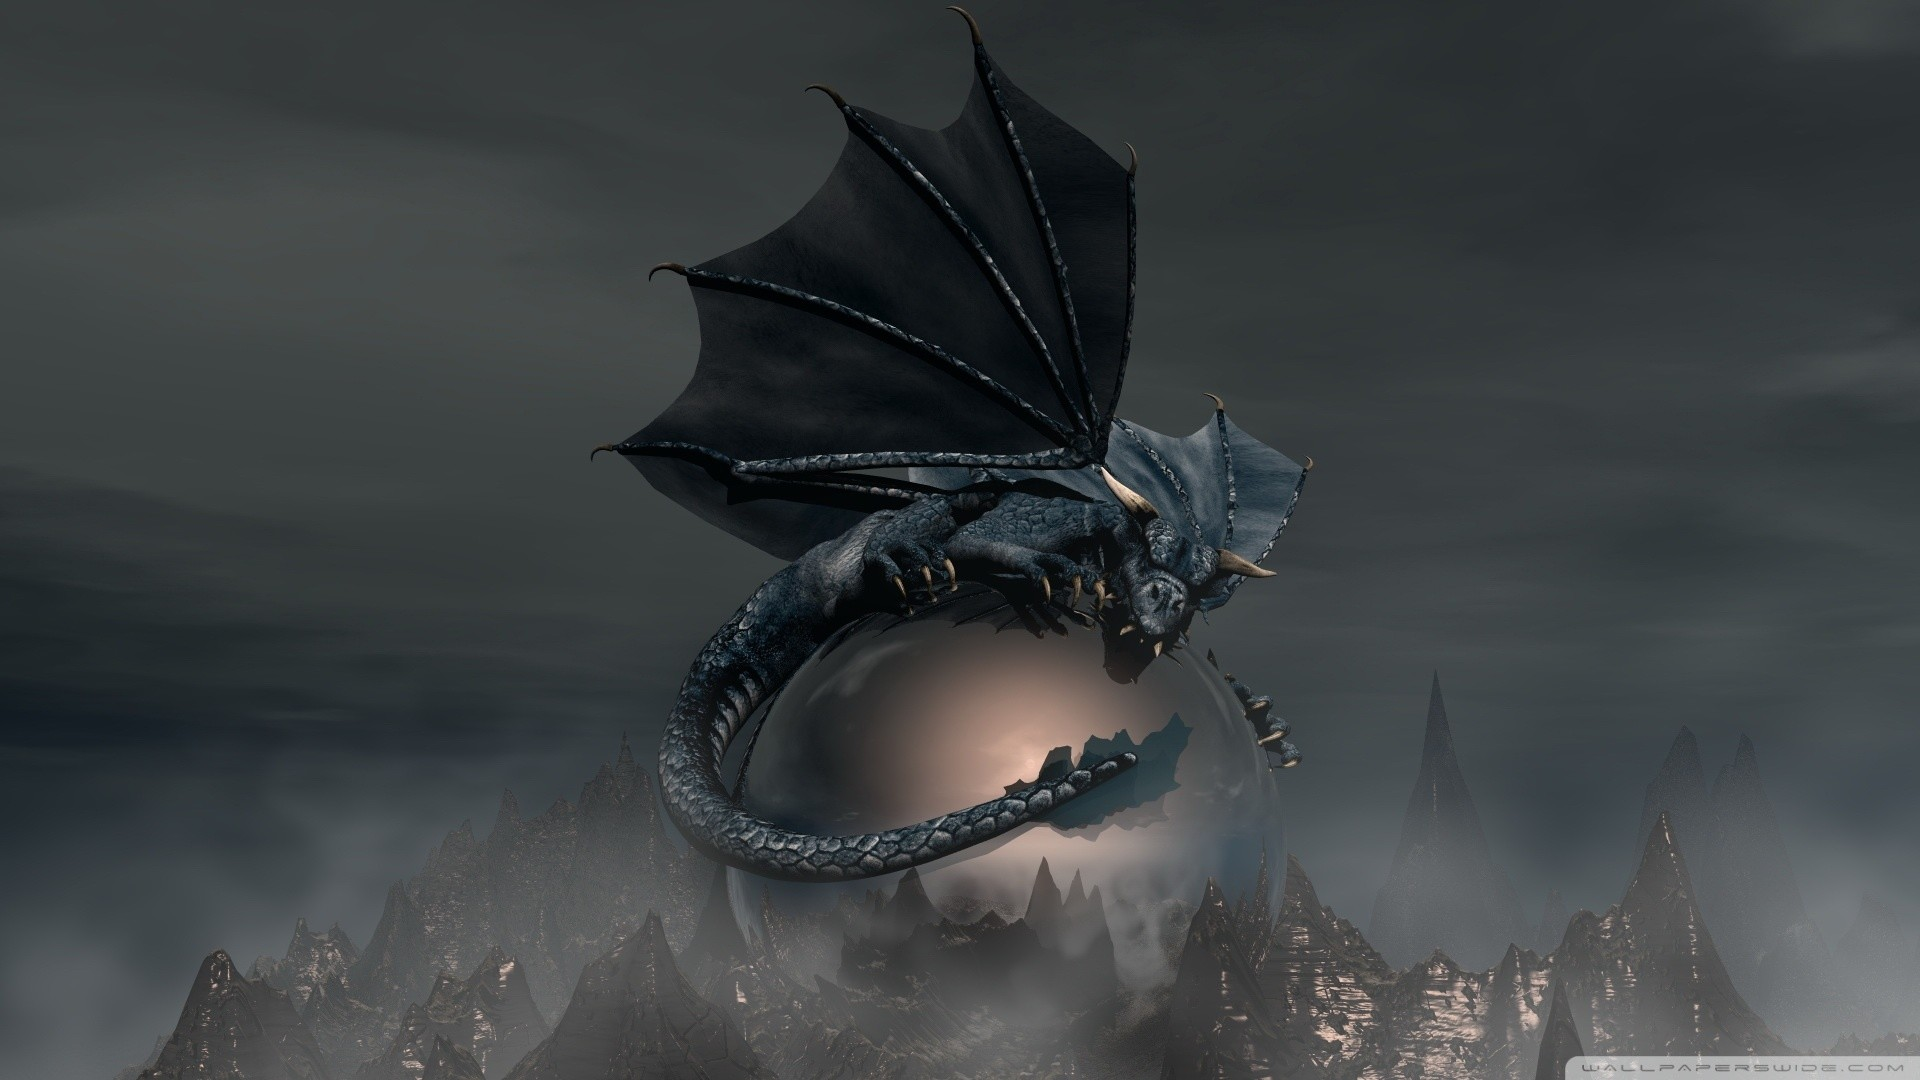 Black Dragon Wallpaper Black, Dragon